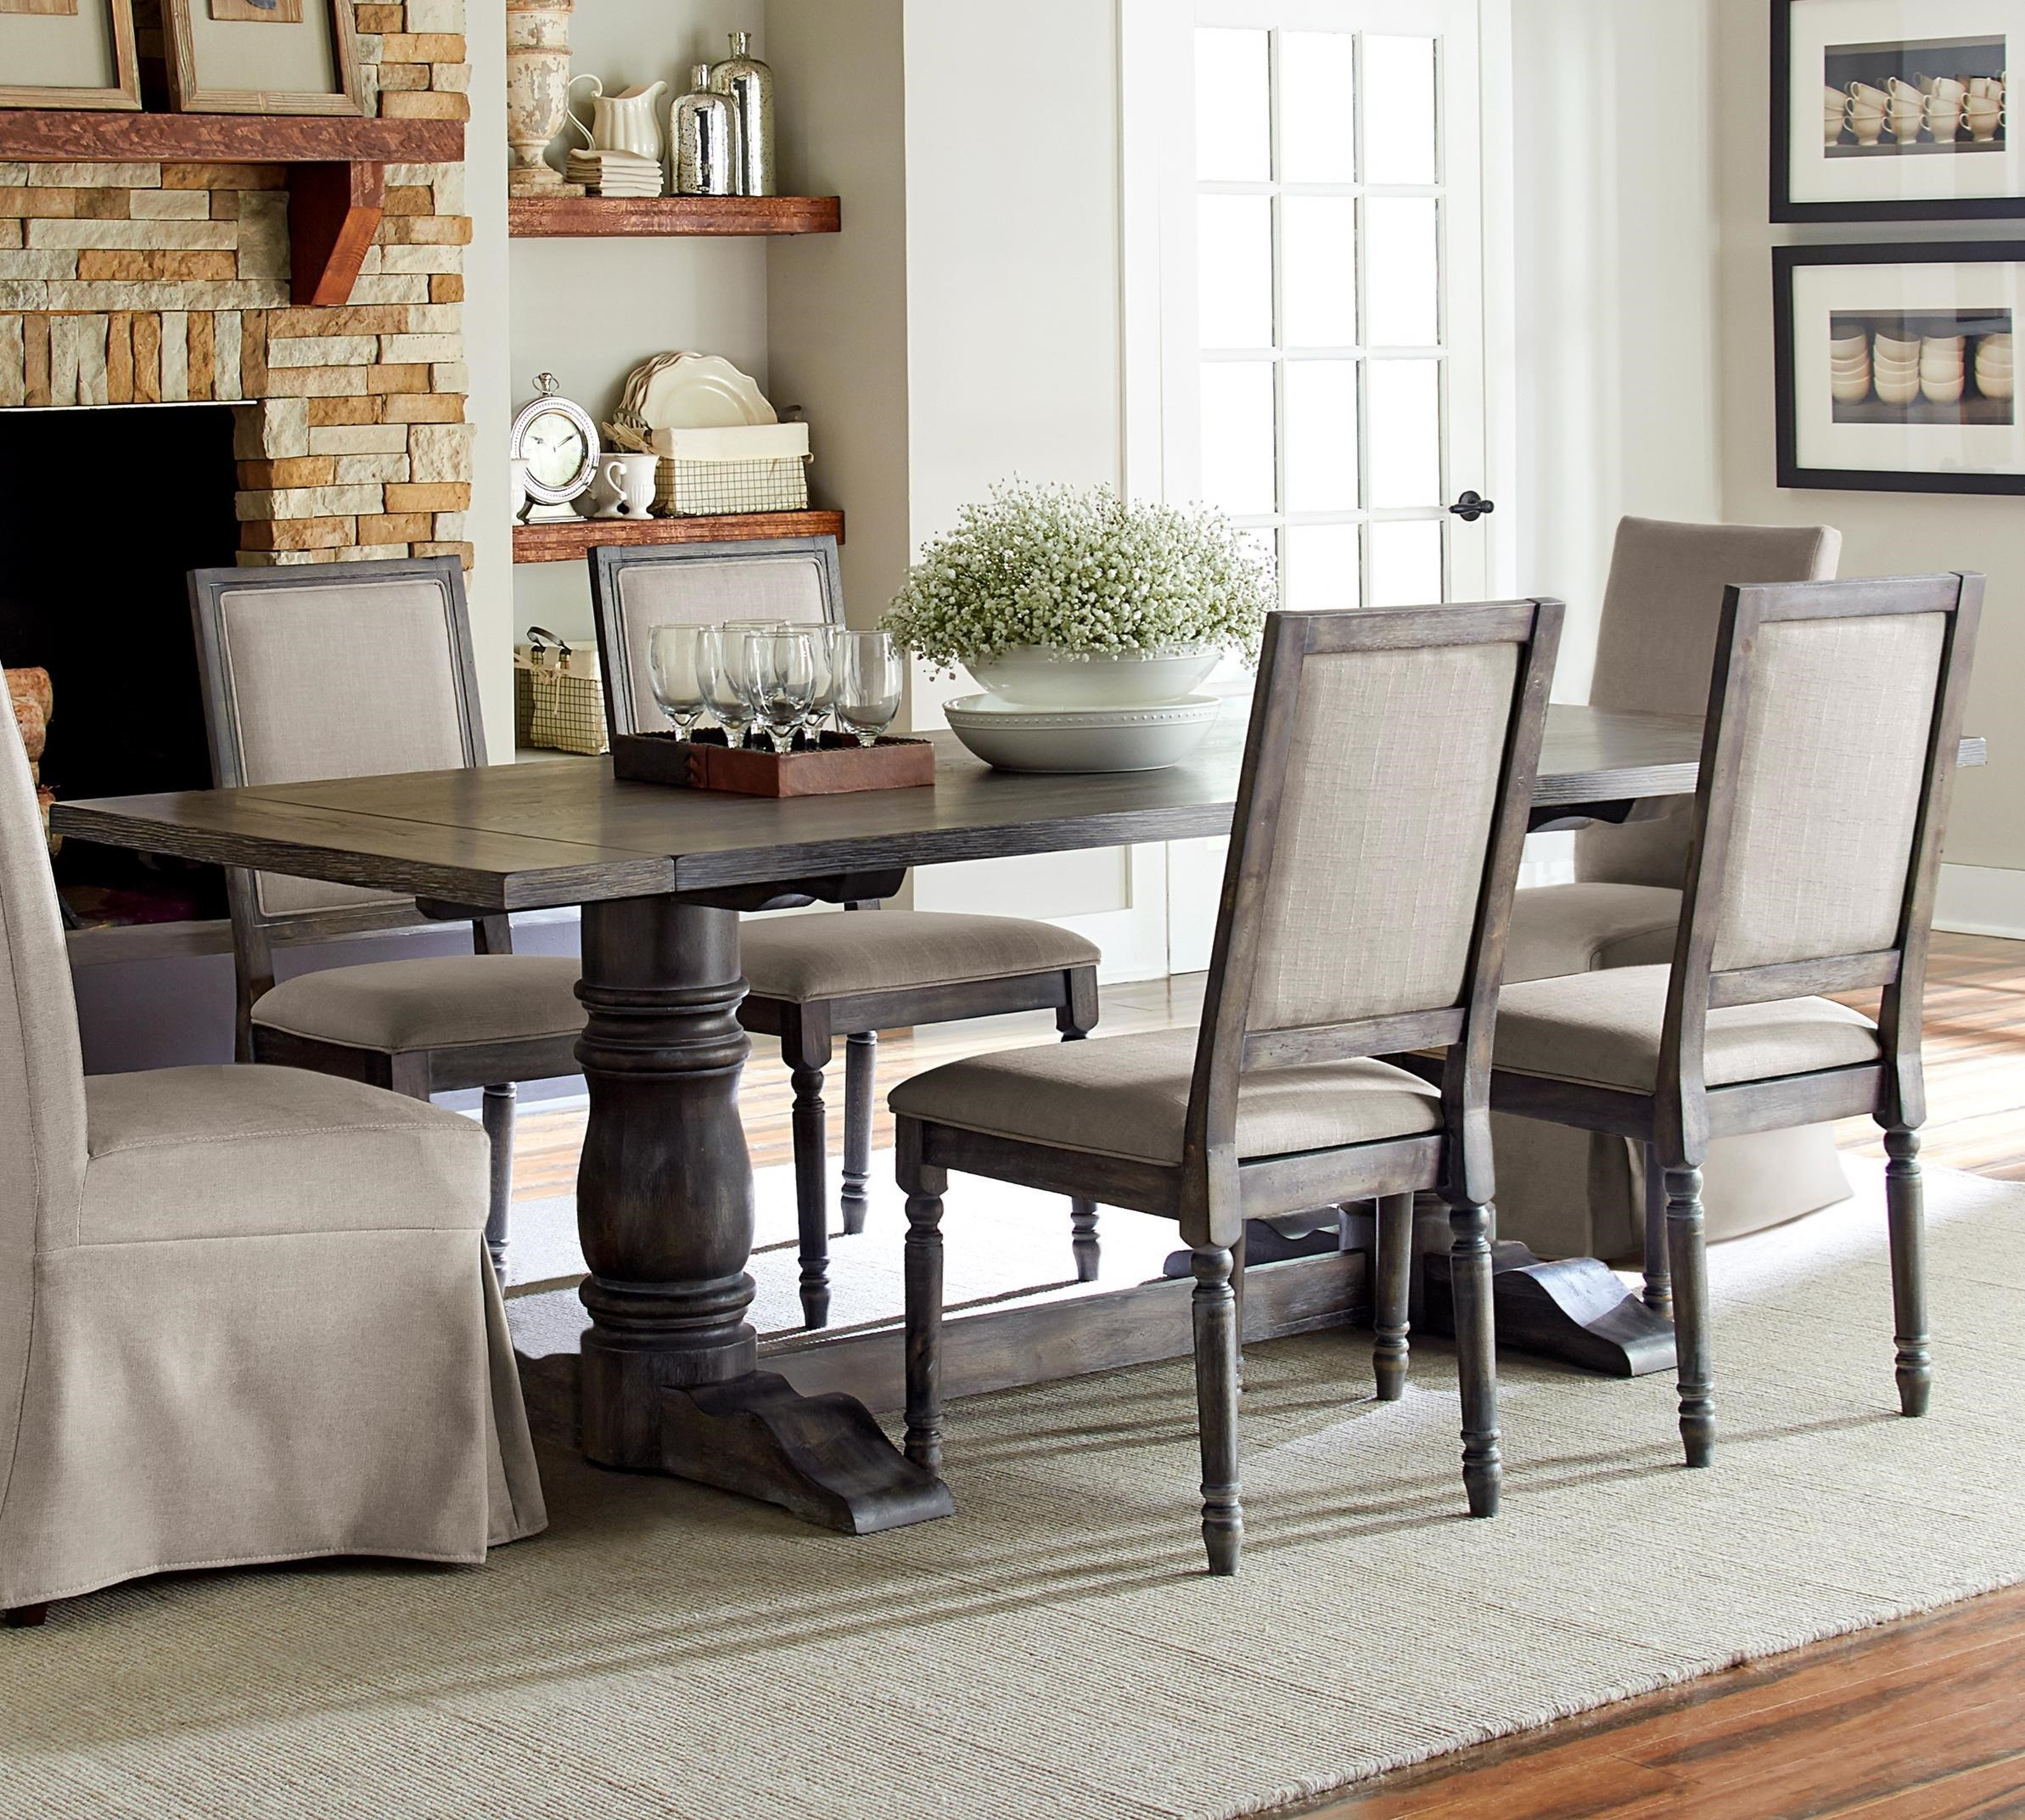 Progressive Furniture Muses Rectangular Dining Table With Turned